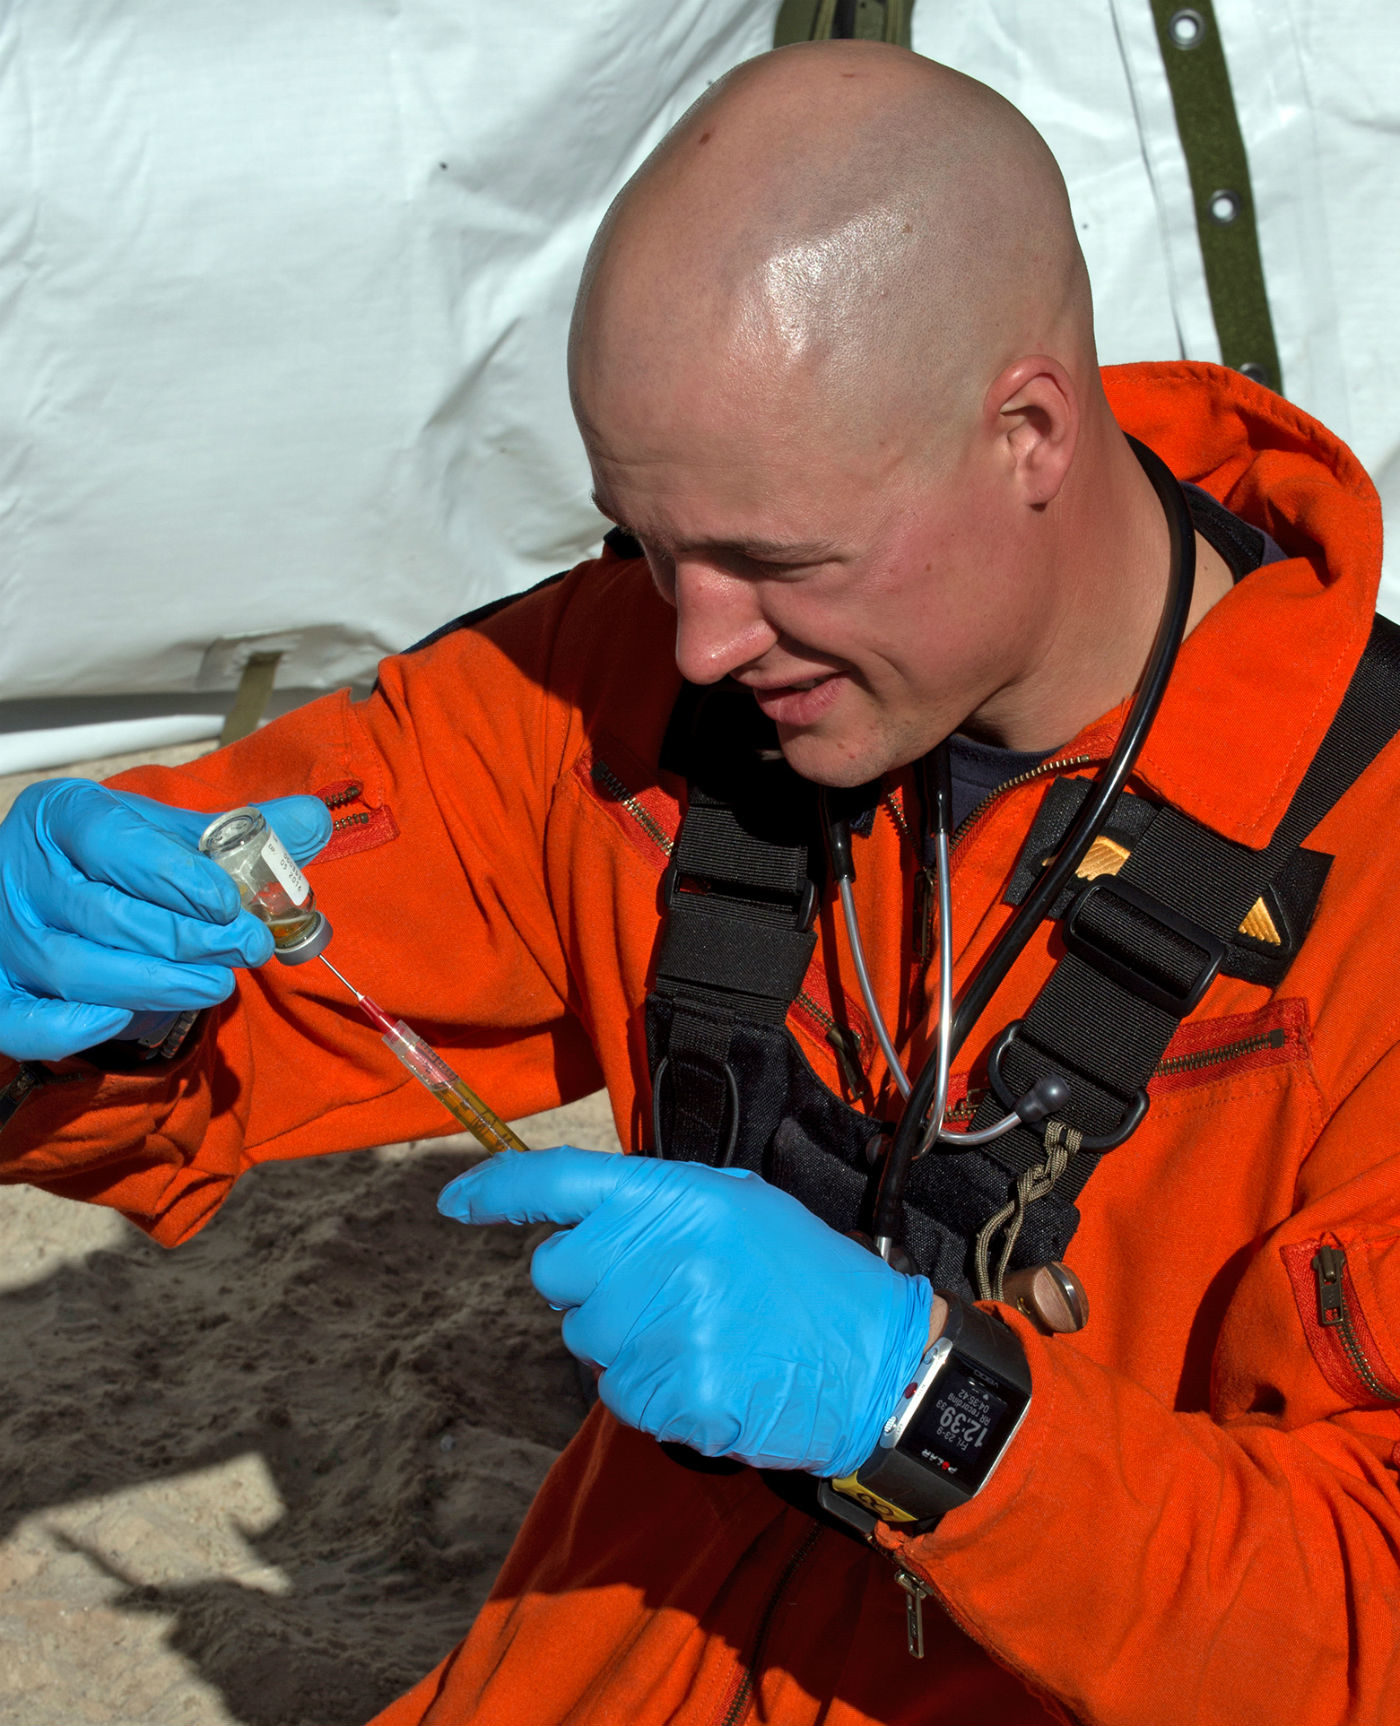 MCpl Alfred Barr, a SAR technician from 435 Search and Rescue Squadron, prepares to treat a simulated casualty during the National Search and Rescue Exercise in Yellowknife, N.W.T, on Sept. 23, 2016. Barr died in a training accident on March 8, 2017. MCpl Pat Blanchard Photo